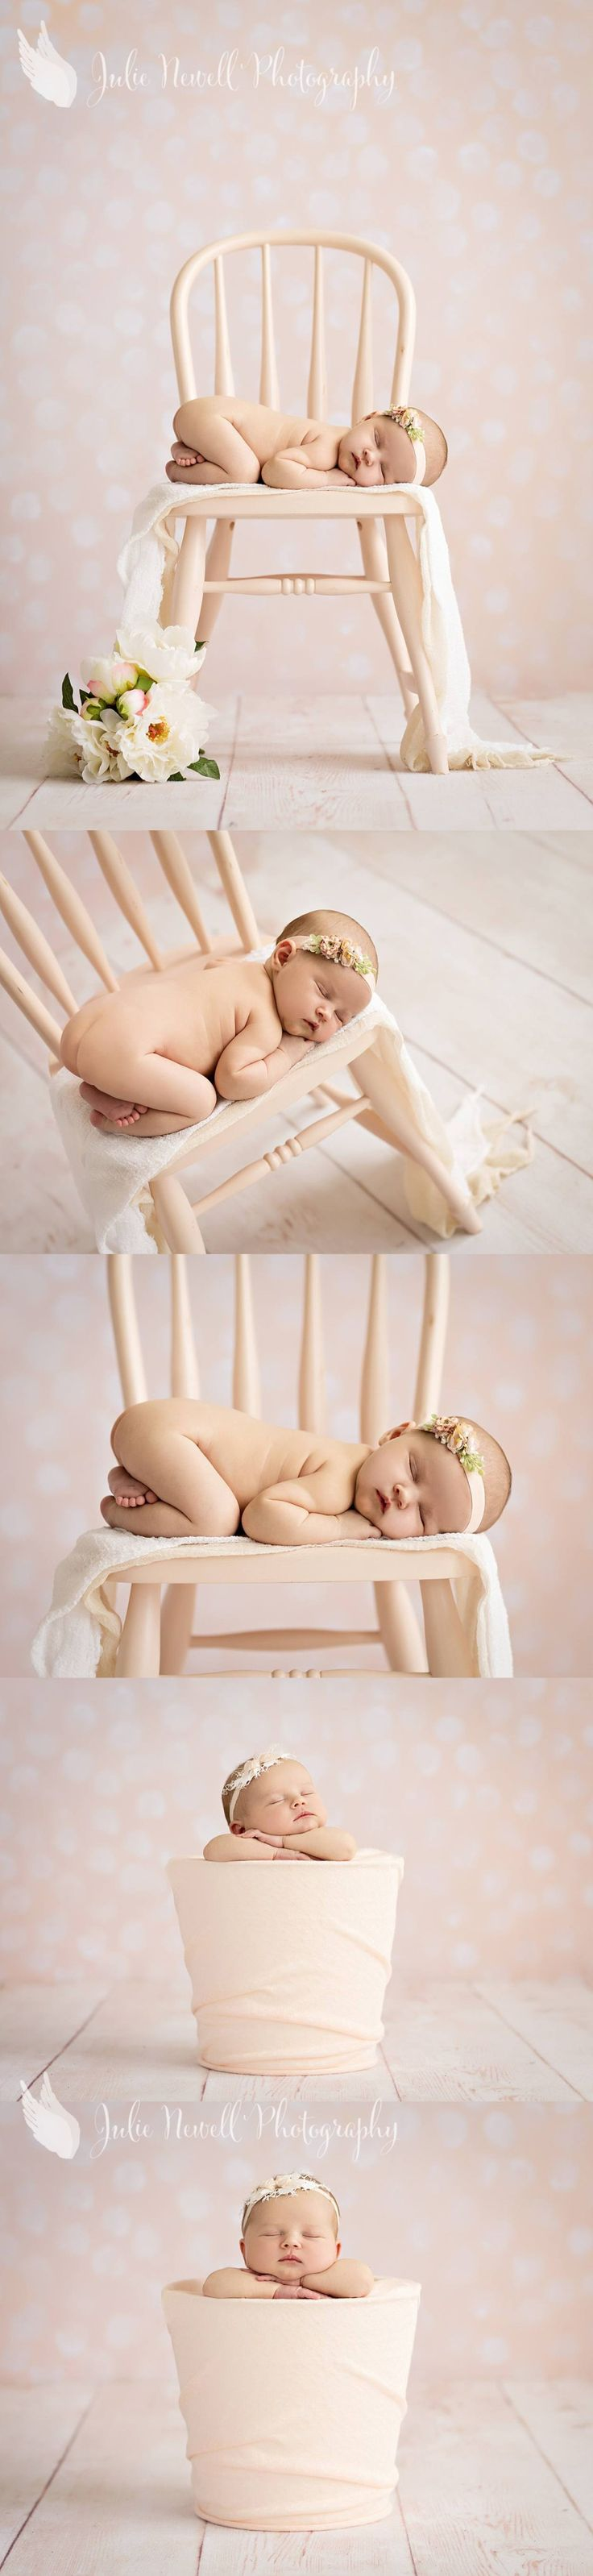 newborn photography, newborn photographer, chicago newborn photography, chicago newborn photographer, best chicago newborn photographer, best chicago newborn photography, newborn girl photographer, newborn girl photography, newborn girl posing, newborn girl photography set